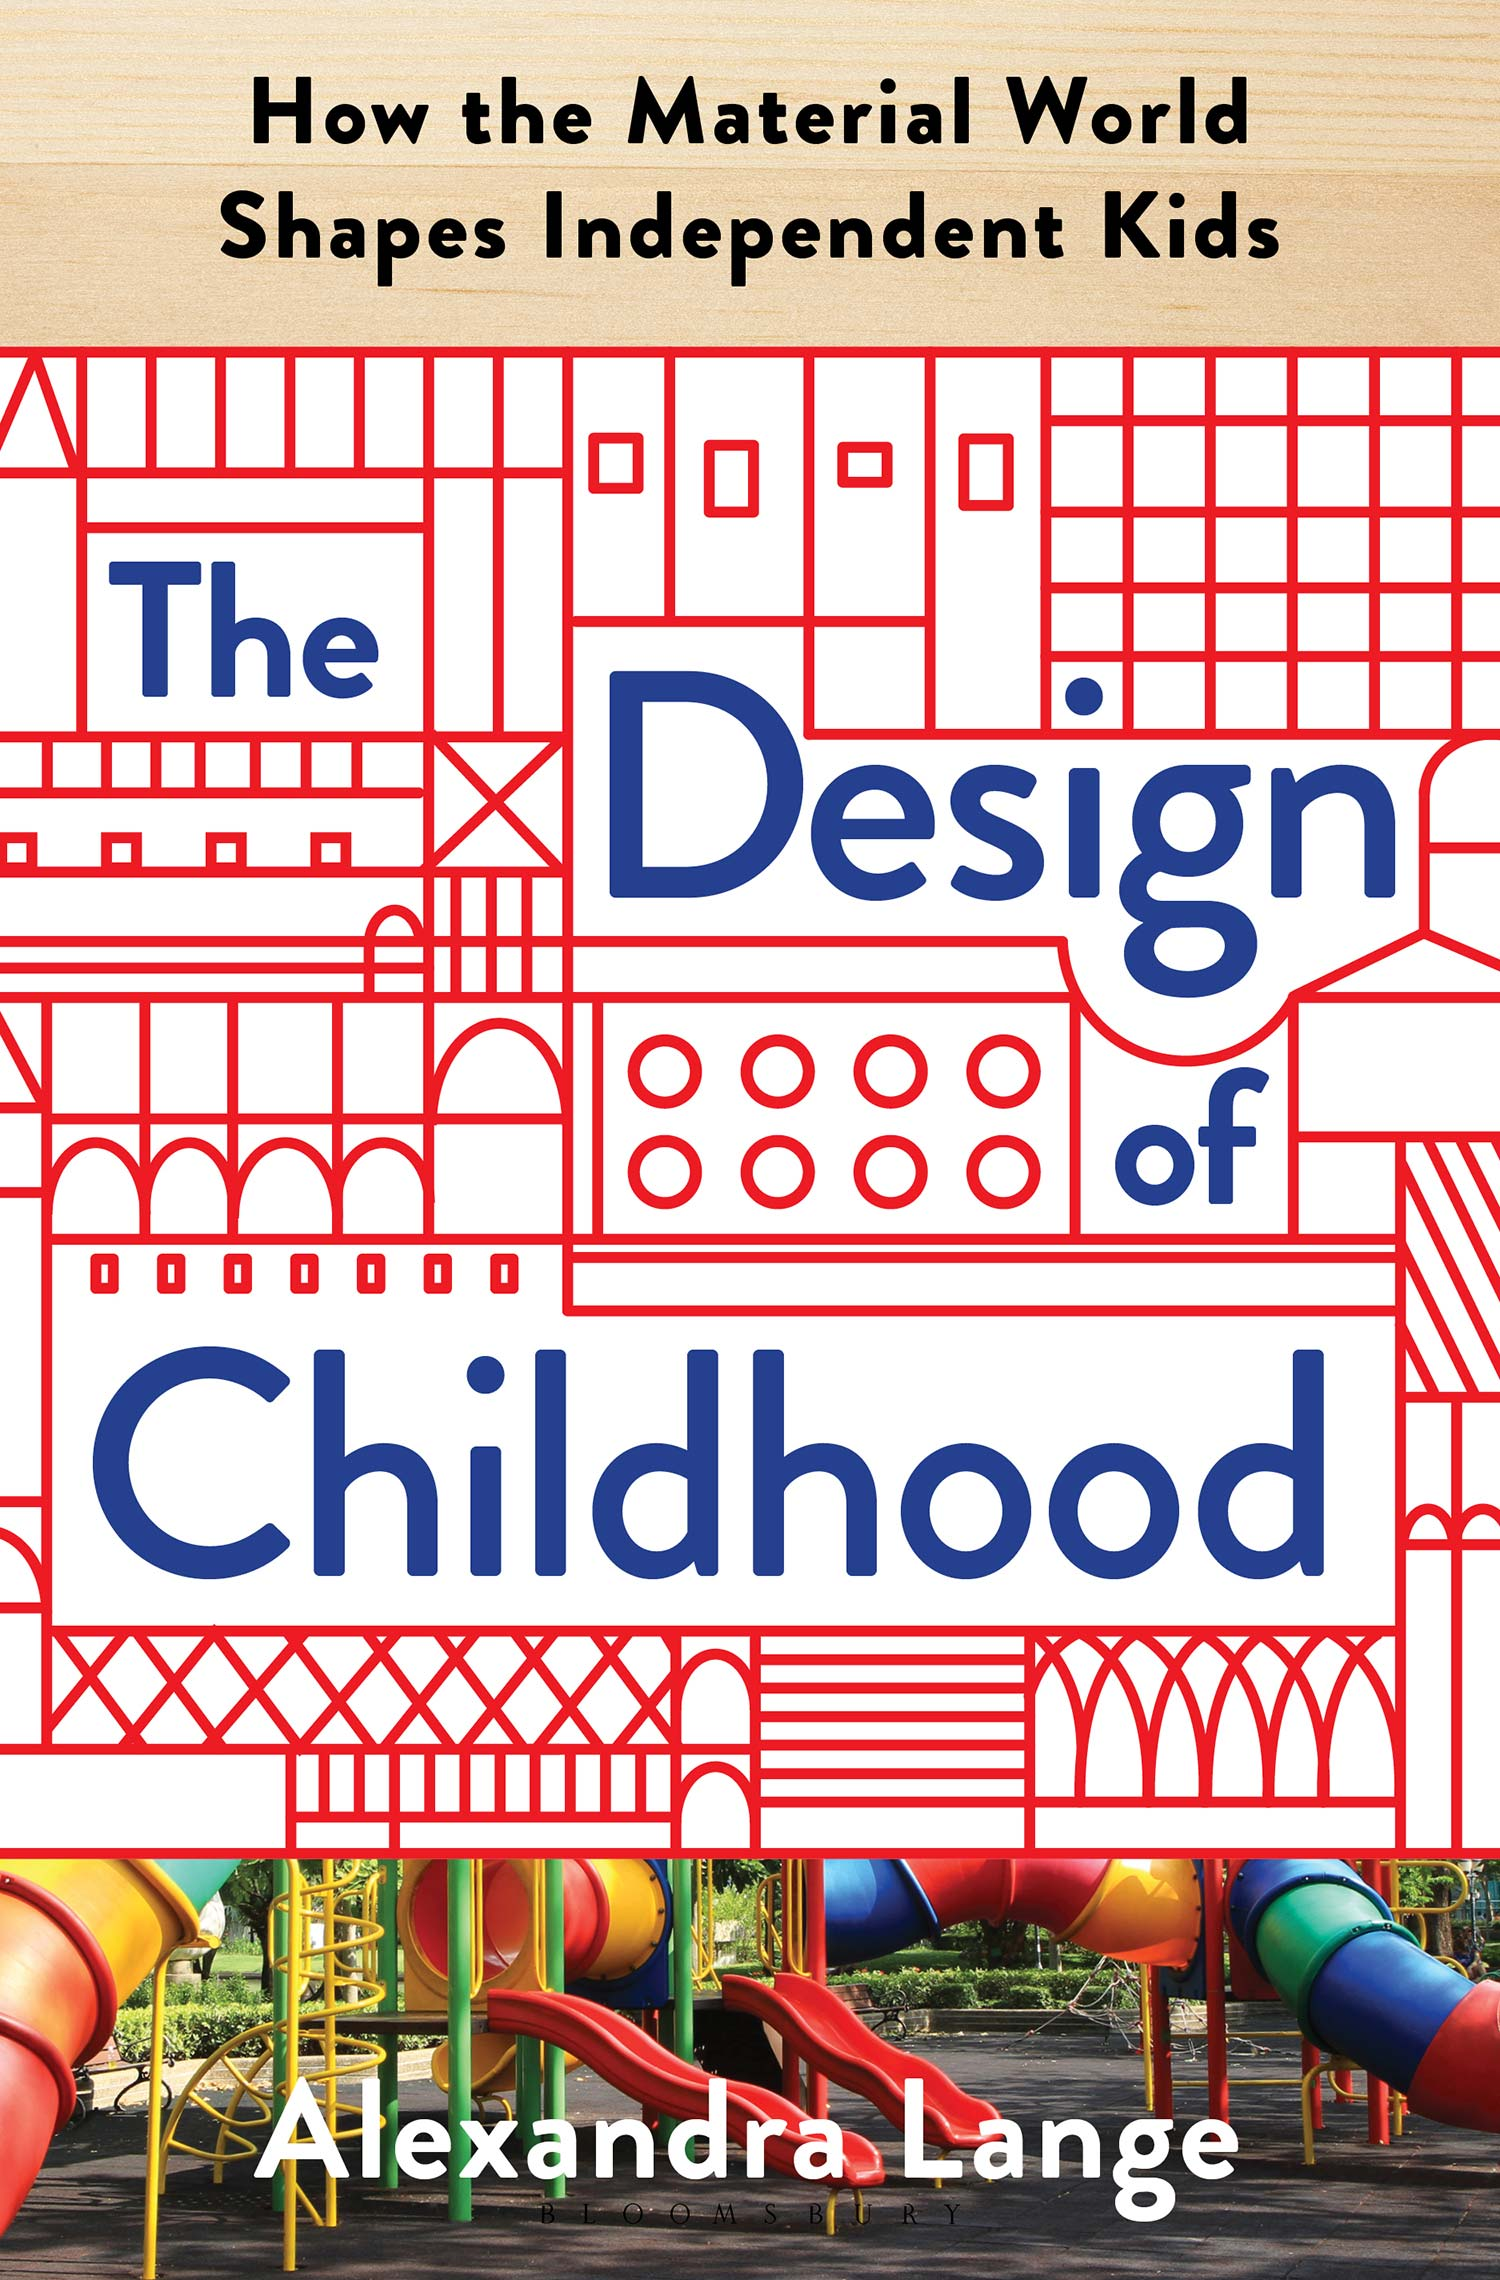 Book cover for The Design of Childhood by Alexandra Lange.